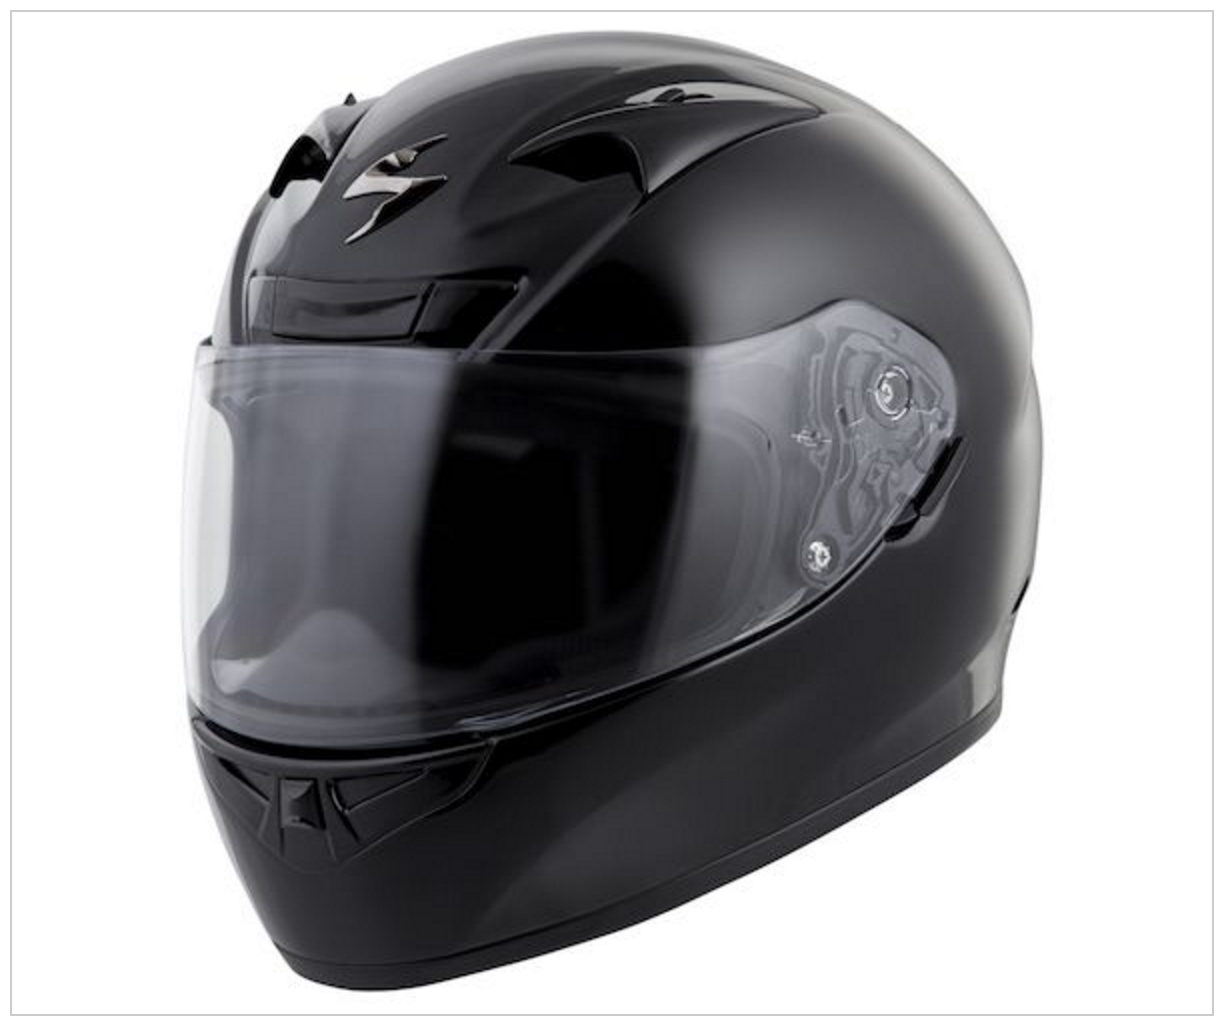 Scorpion EXO-R710 Motorcycle Helmet Review: Snell Certified Helmet With Cool Graphics